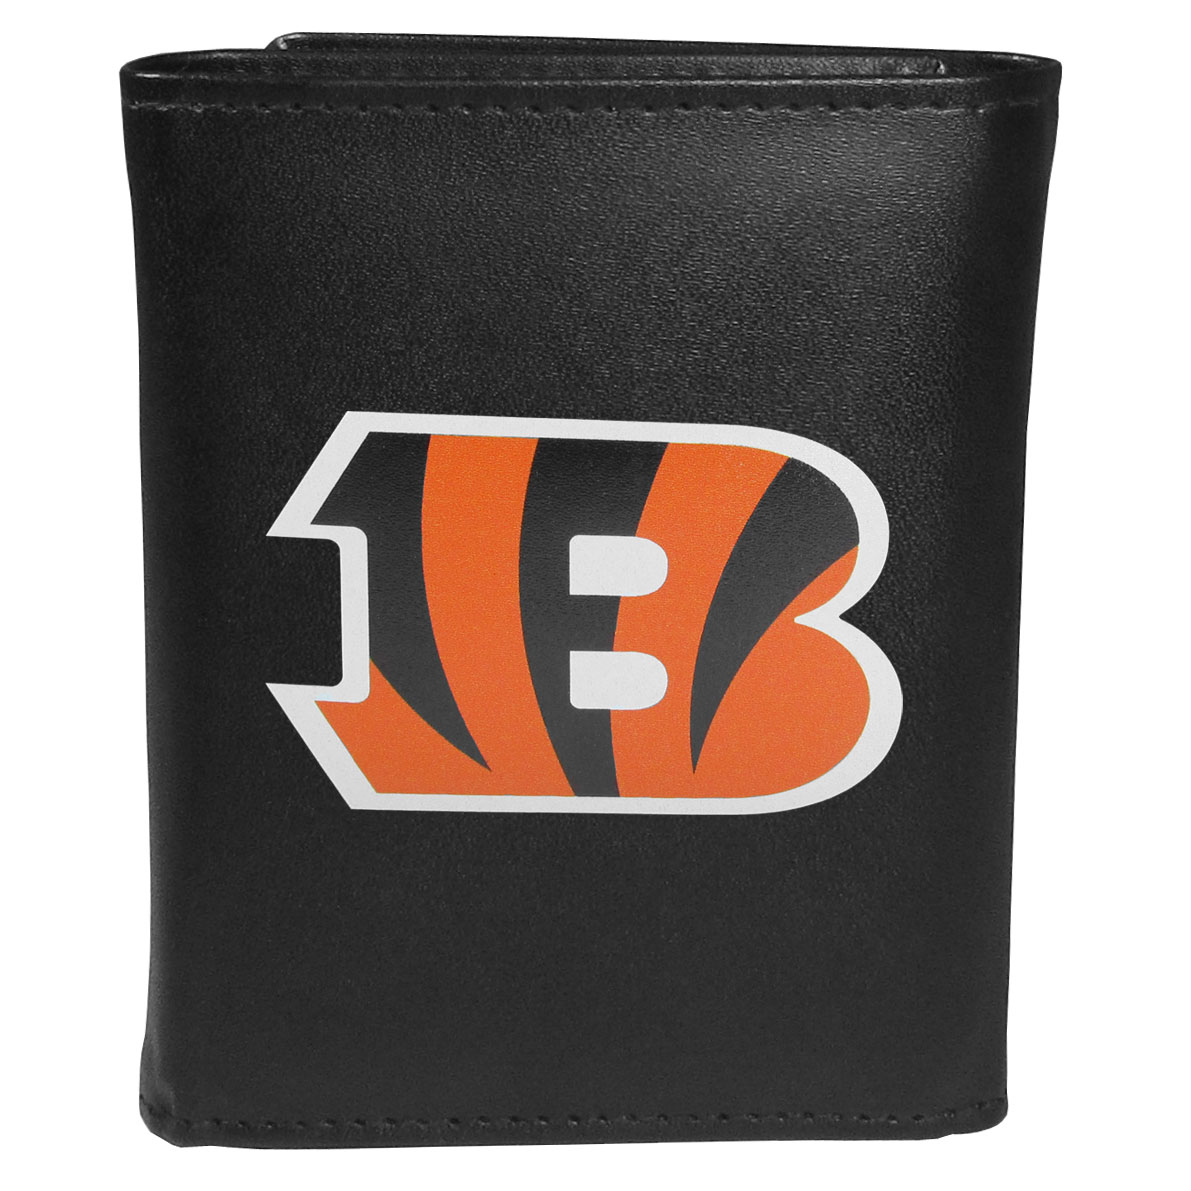 Cincinnati Bengals Leather Tri-fold Wallet, Large Logo - Our classic fine leather tri-fold wallet is meticulously crafted with genuine leather that will age beautifully so you will have a quality wallet for years to come. This is fan apparel at its finest. The wallet is packed with organizational  features; lots of credit card slots, large billfold pocket, and a window ID slot. The front of the wallet features an extra large Cincinnati Bengals printed logo.